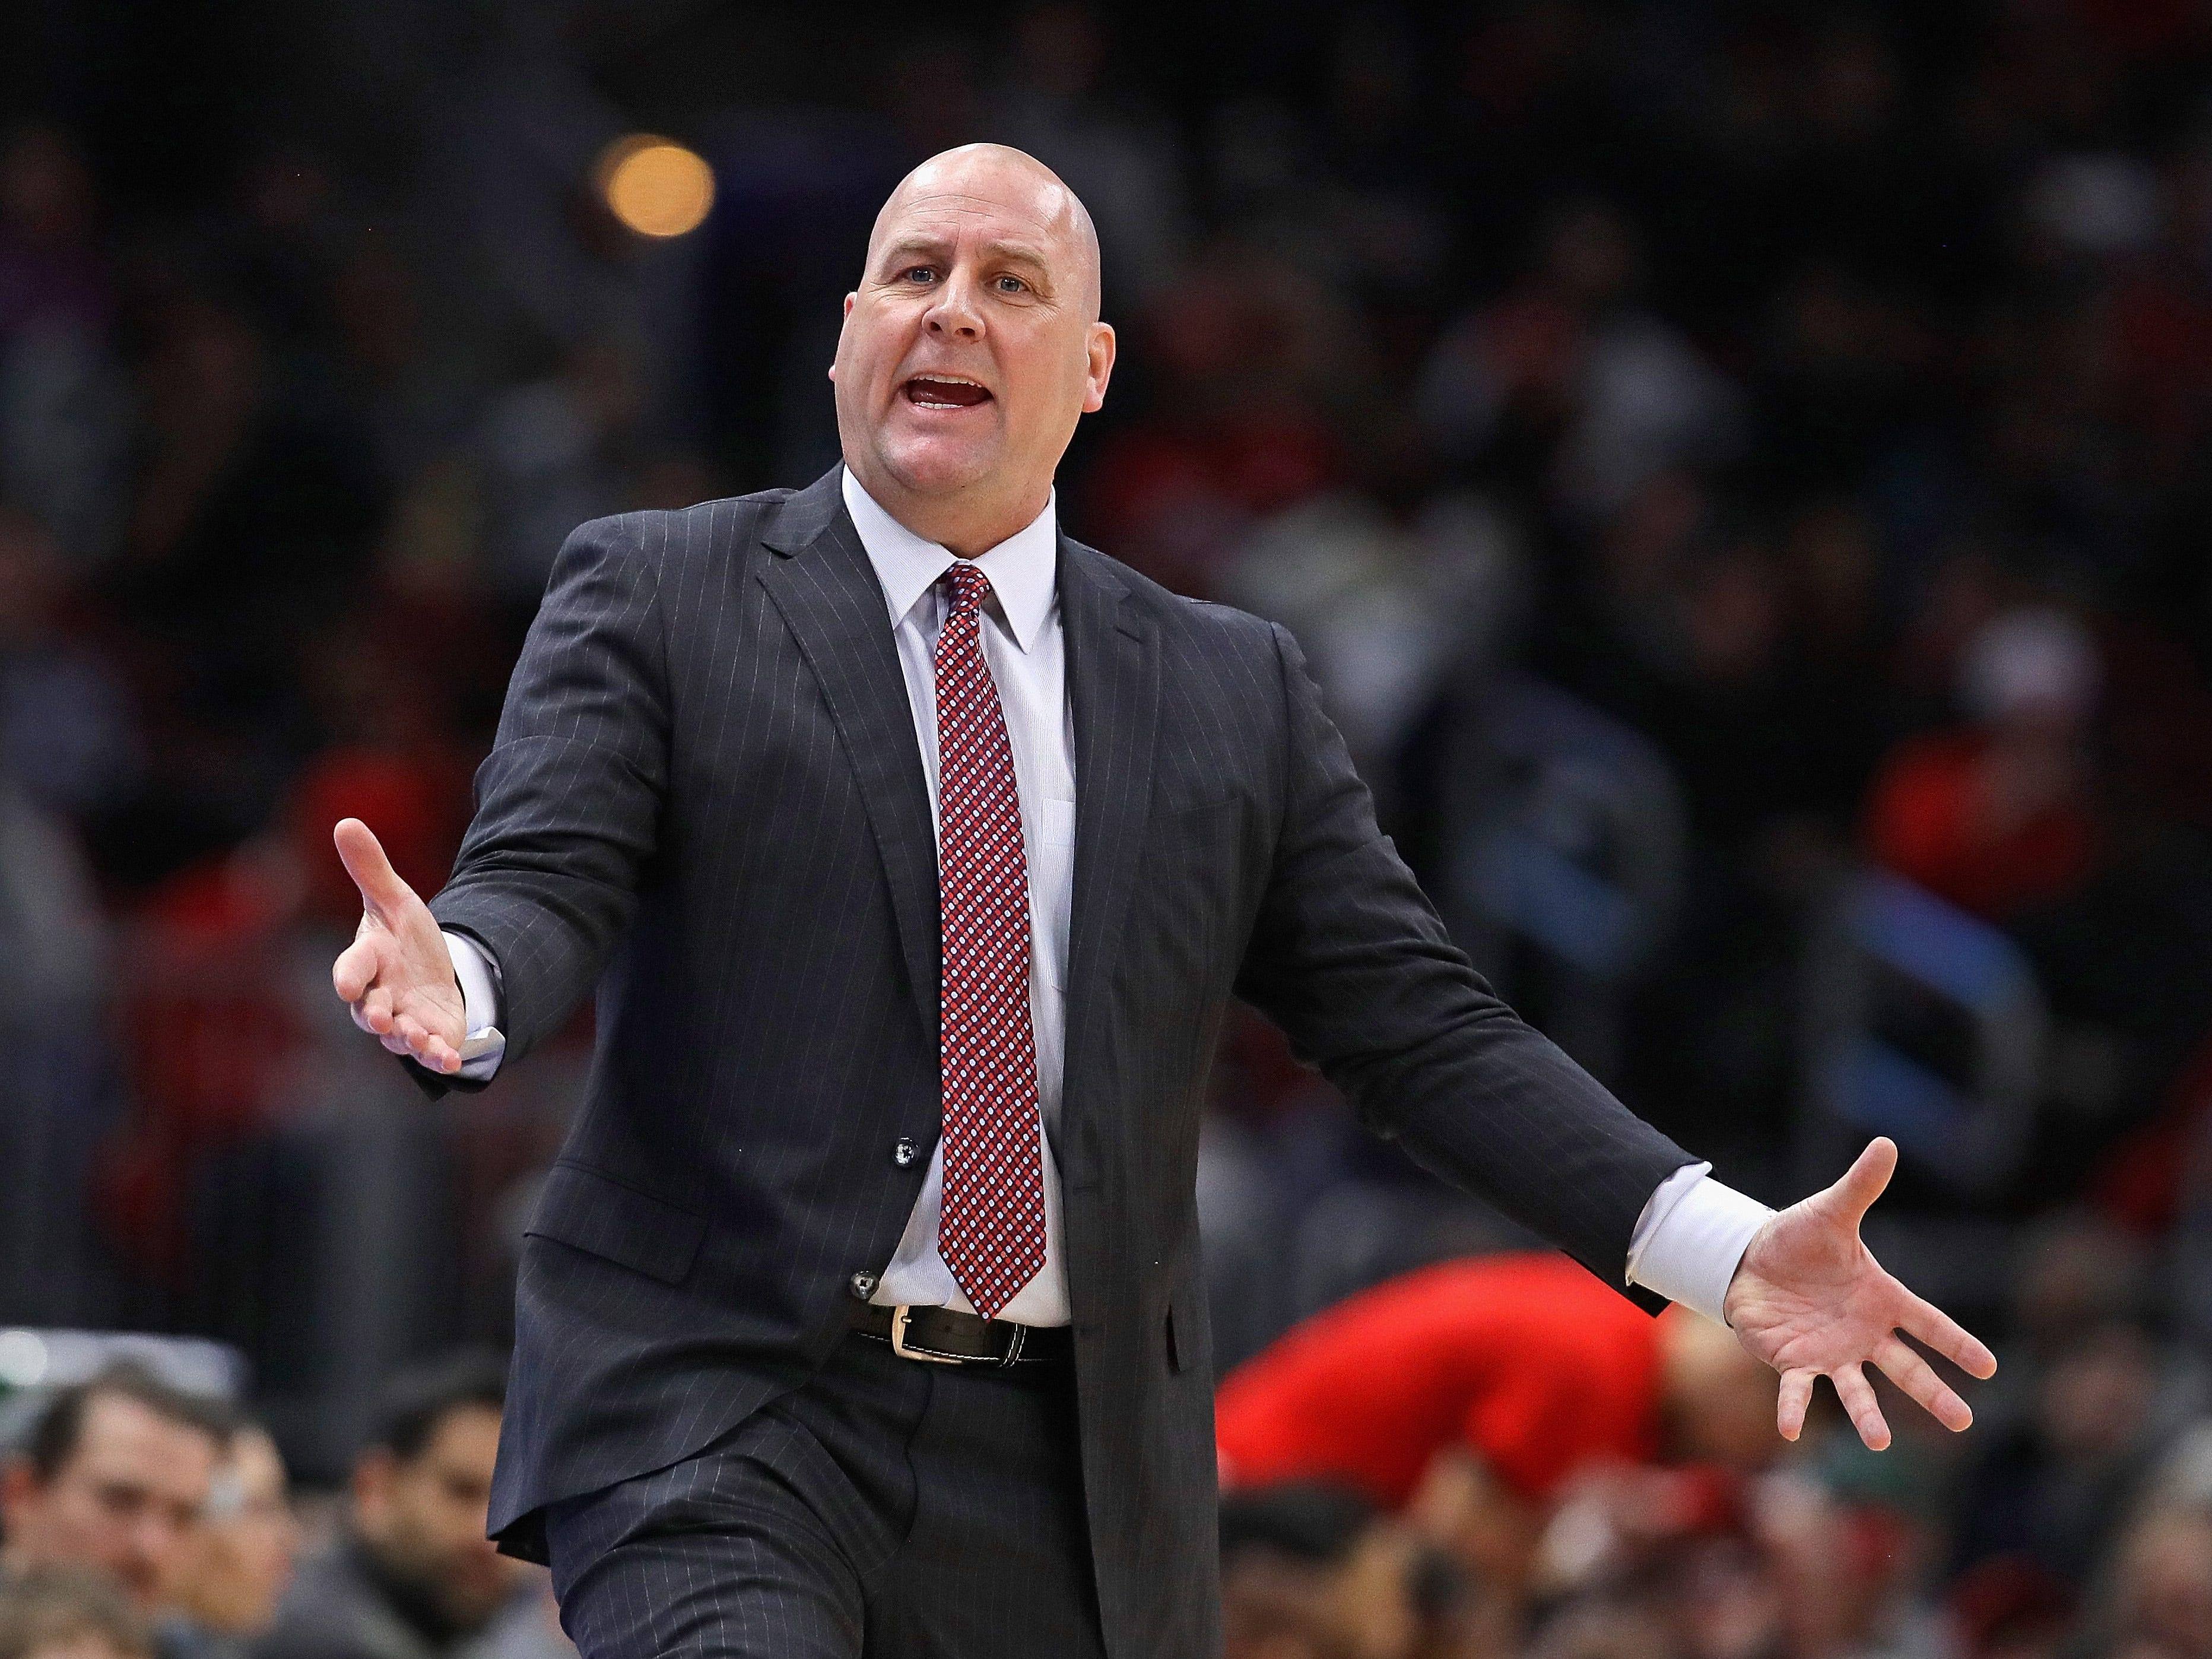 Bulls head coach Jim Boylen, who played on Marquette's NCAA title team, questions a call during Chicago's game against the Bucks on Monday night.